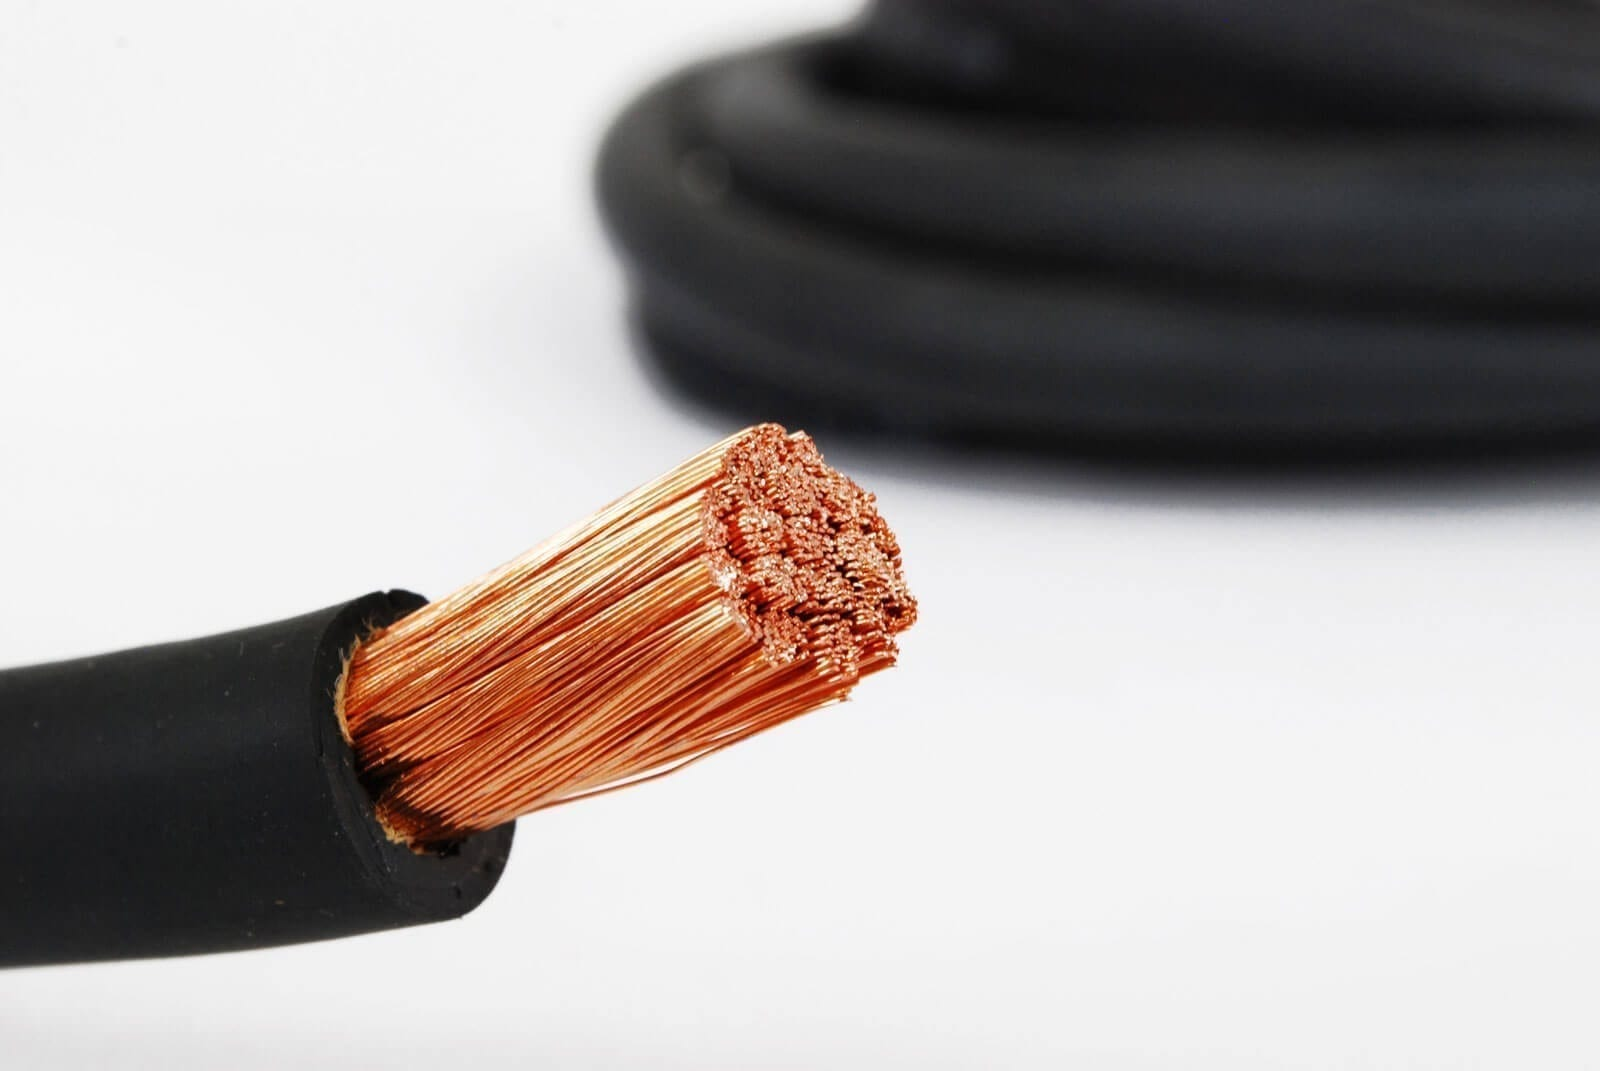 Marvelous Welding Cable Black 4 0 Gauge Wire Sold Per Foot Global Solar Supply Wiring 101 Capemaxxcnl